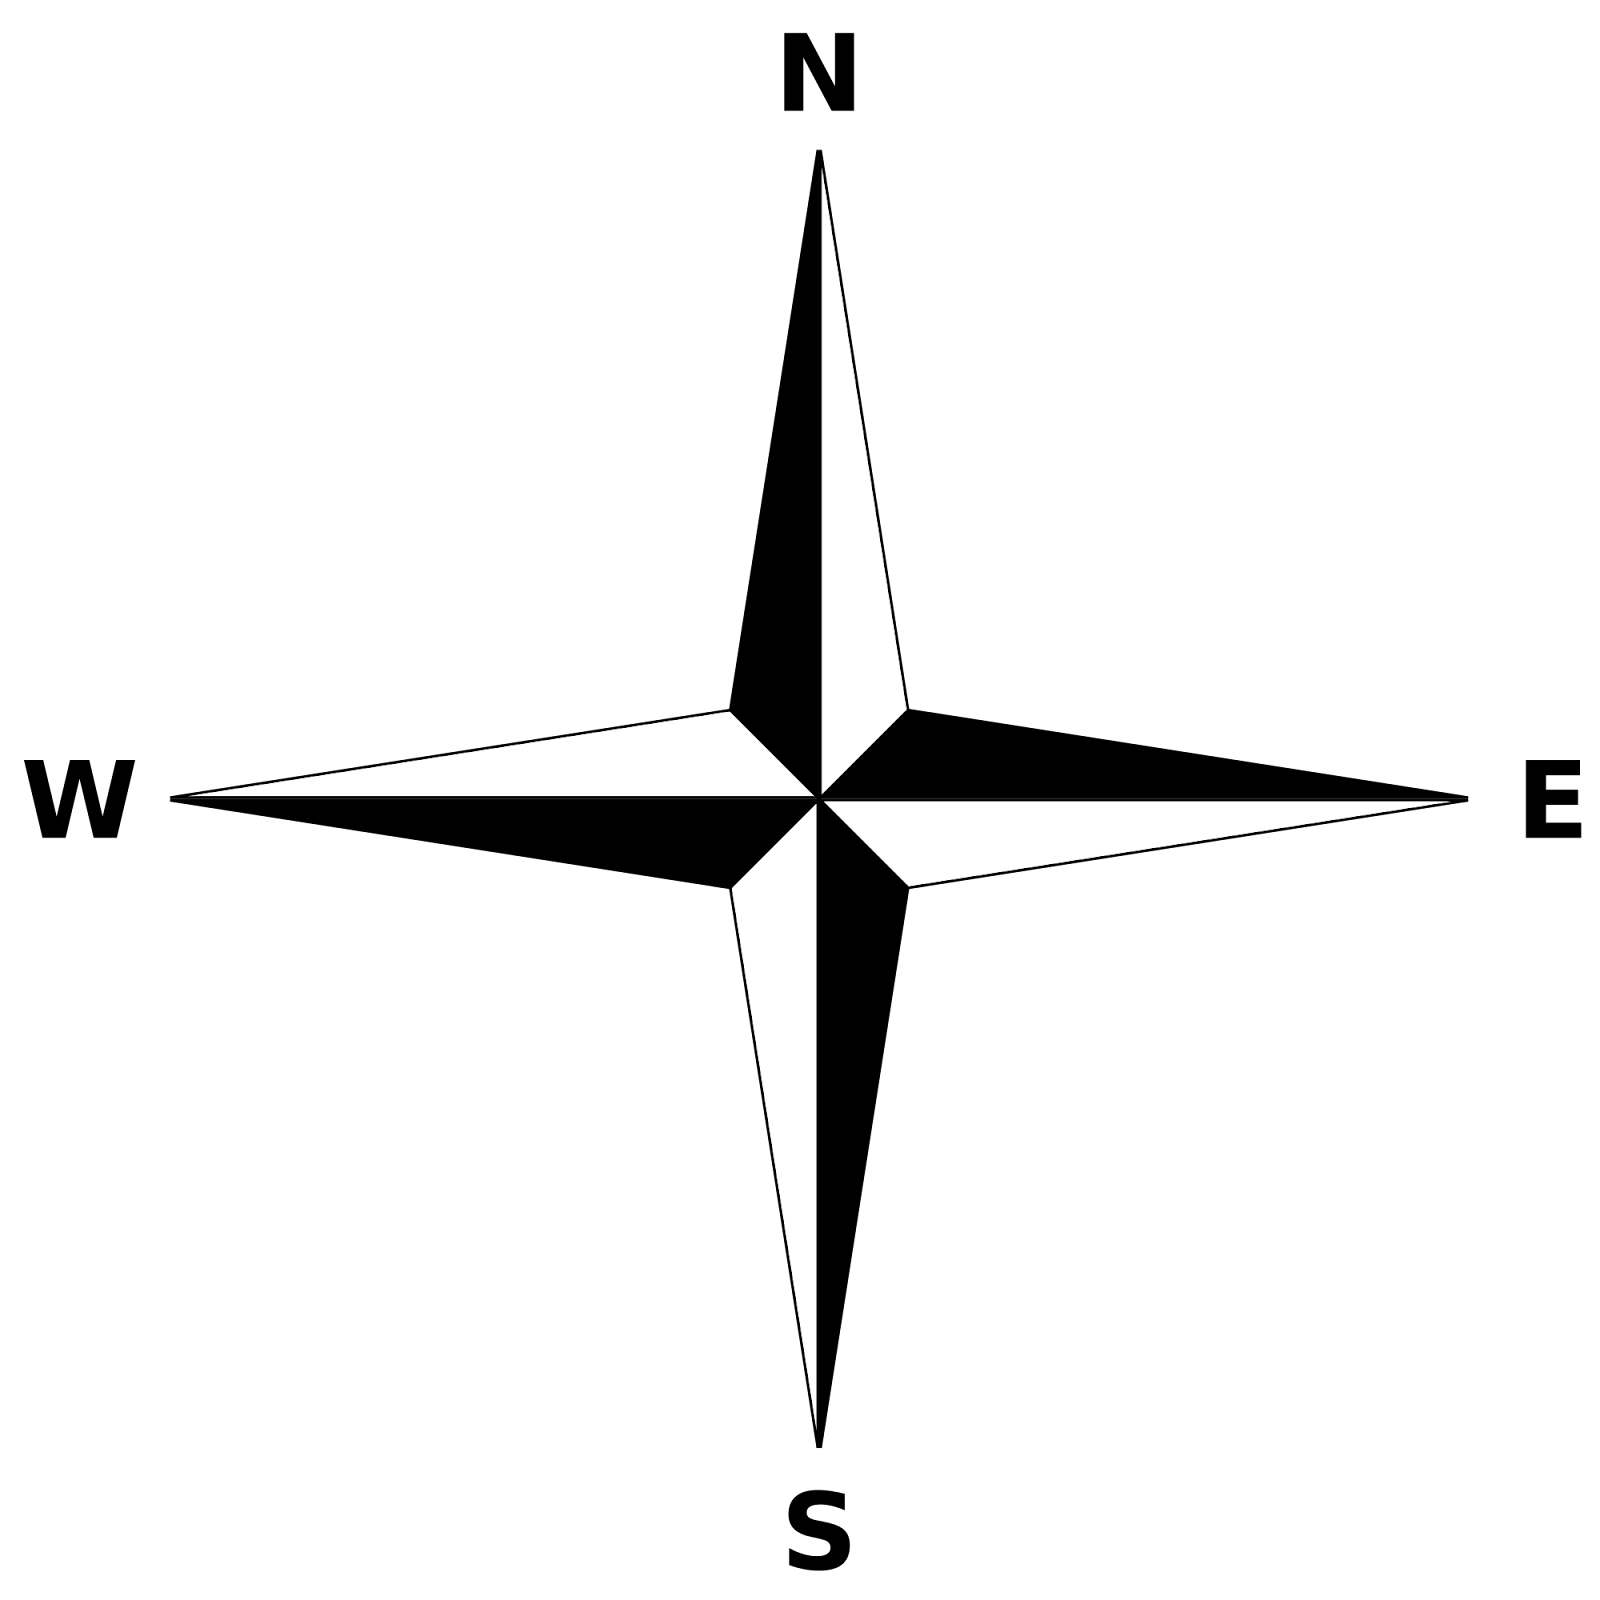 File:Simple compass rose.svg - Wikimedia Commons